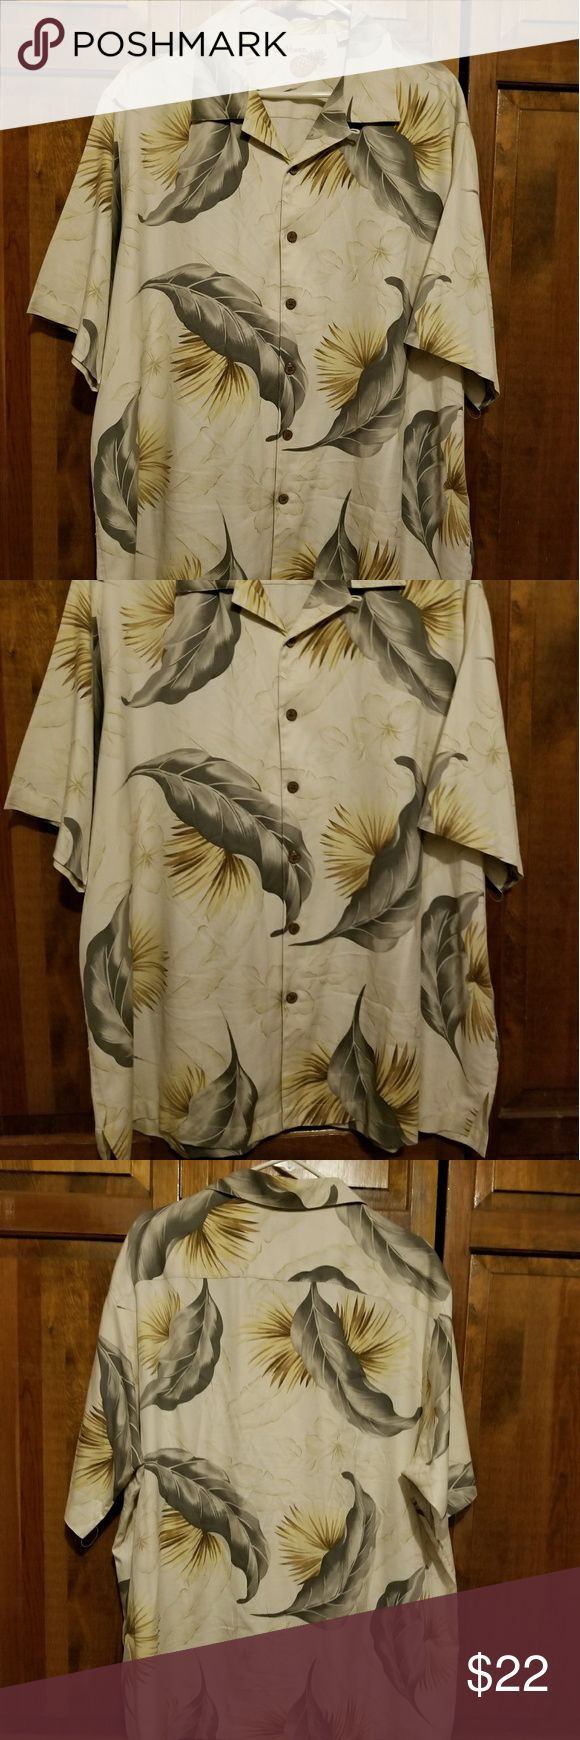 Men's Caribbean Silk Blend Shirt XL Caribbean shirt 70% silk, 30% cotton, size XL, excellent condition.  Cream color with light green and pale yellow foliage. Caribbean Shirts Casual Button Down Shirts